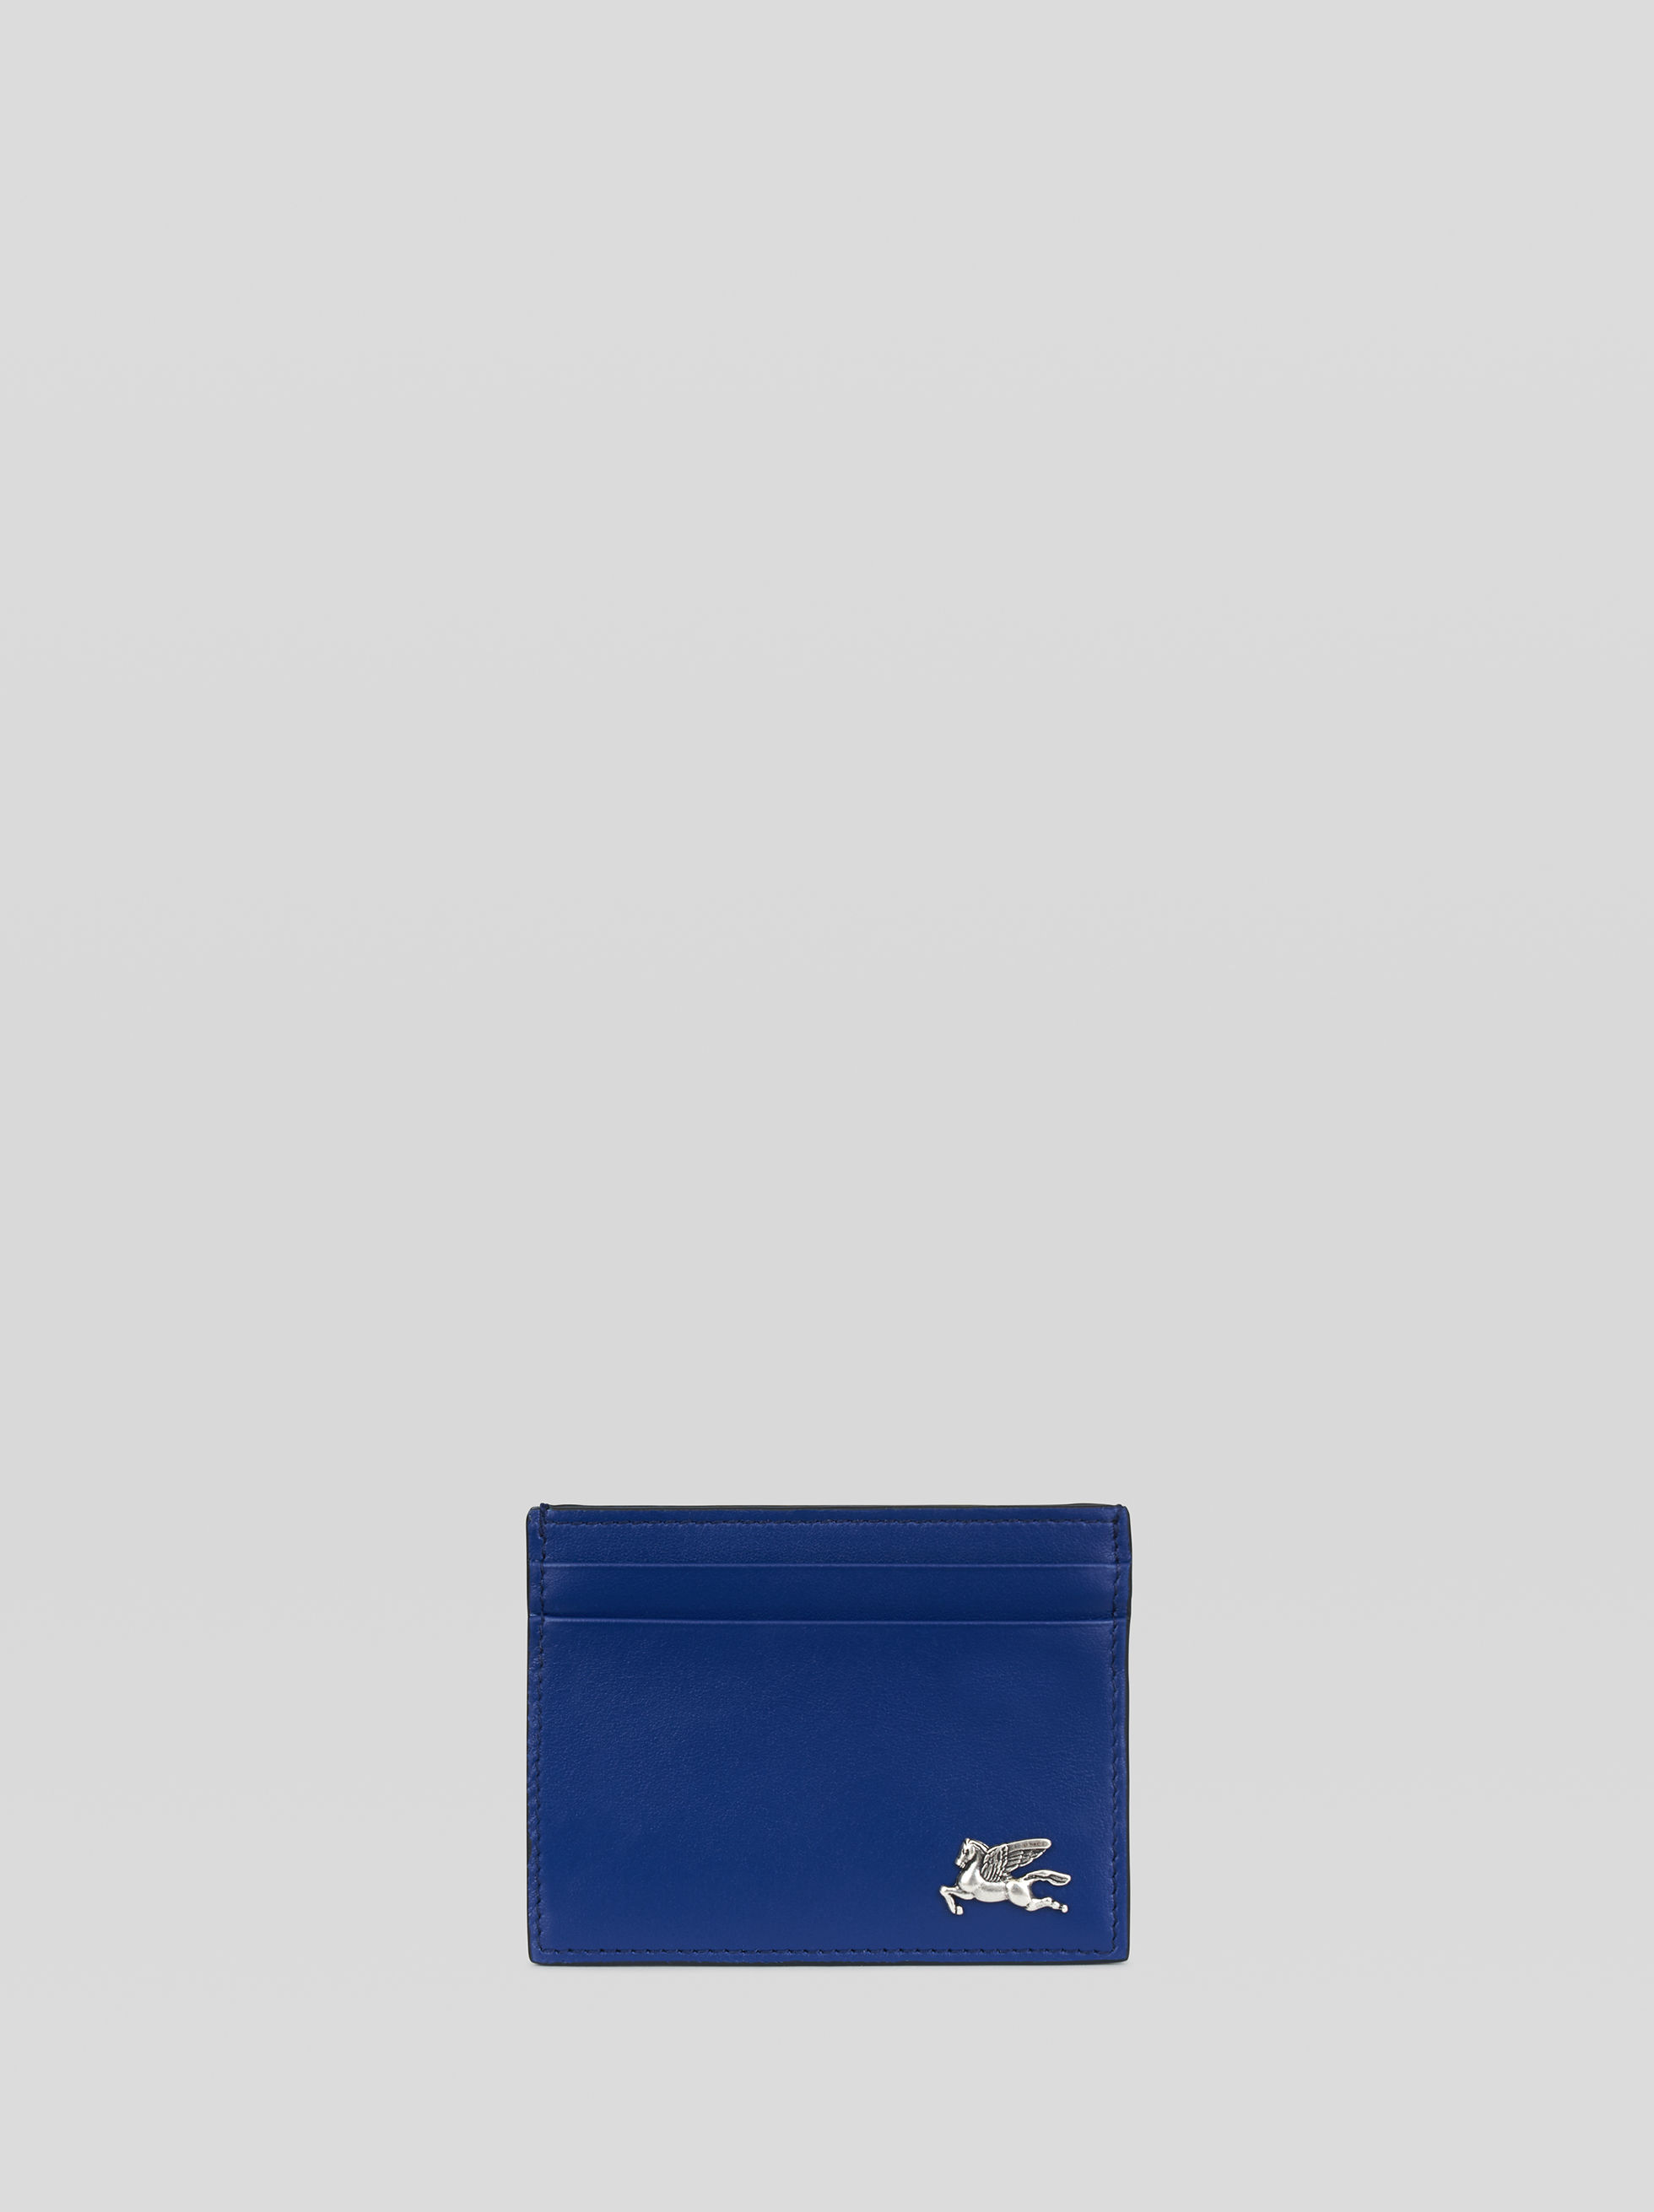 LEATHER CARD HOLDER WITH PEGASO